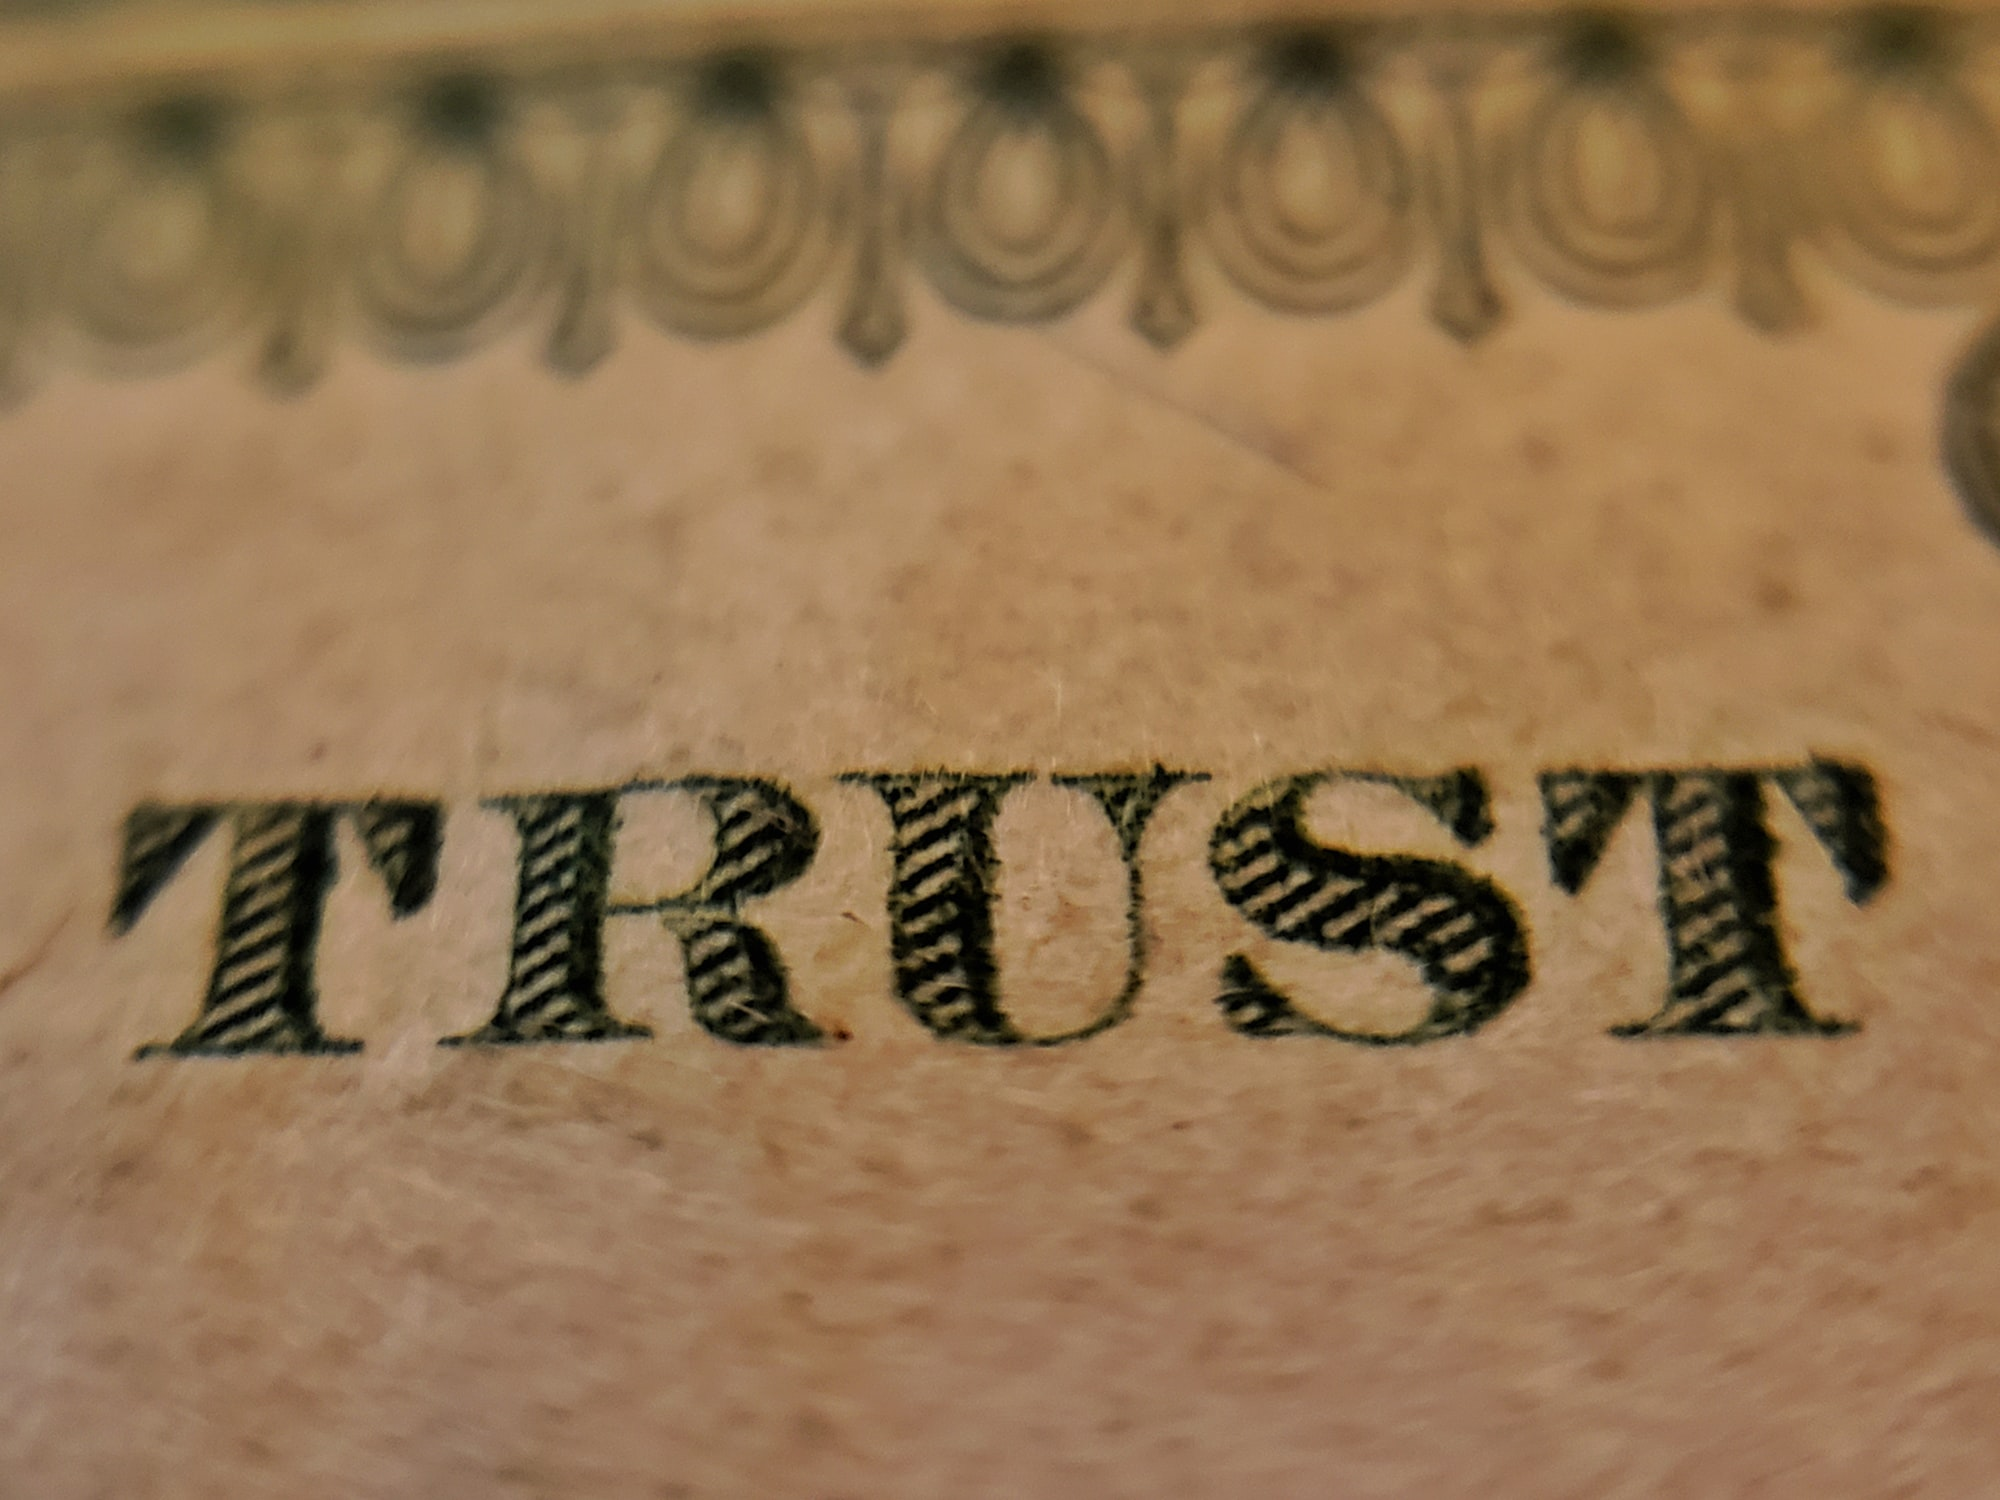 Let's talk about trust in journalism